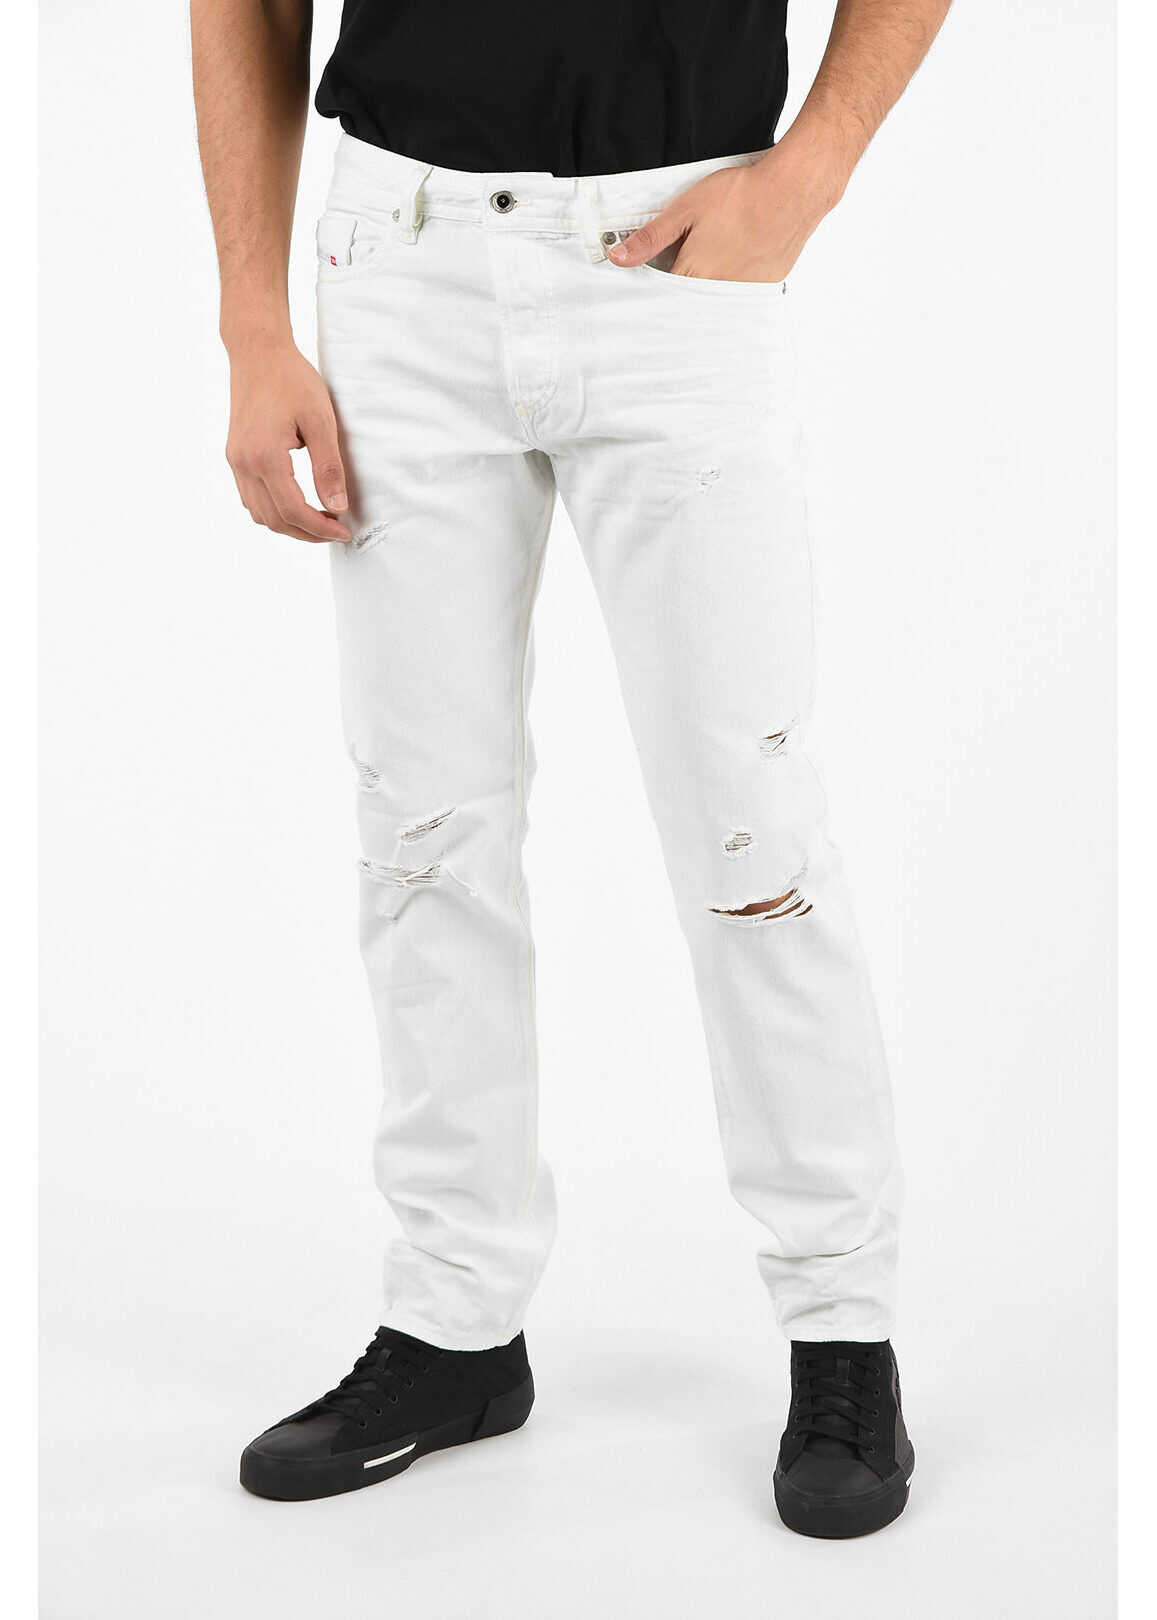 Diesel 19cm Slim Fit BUSTER Jeans L32 WHITE imagine